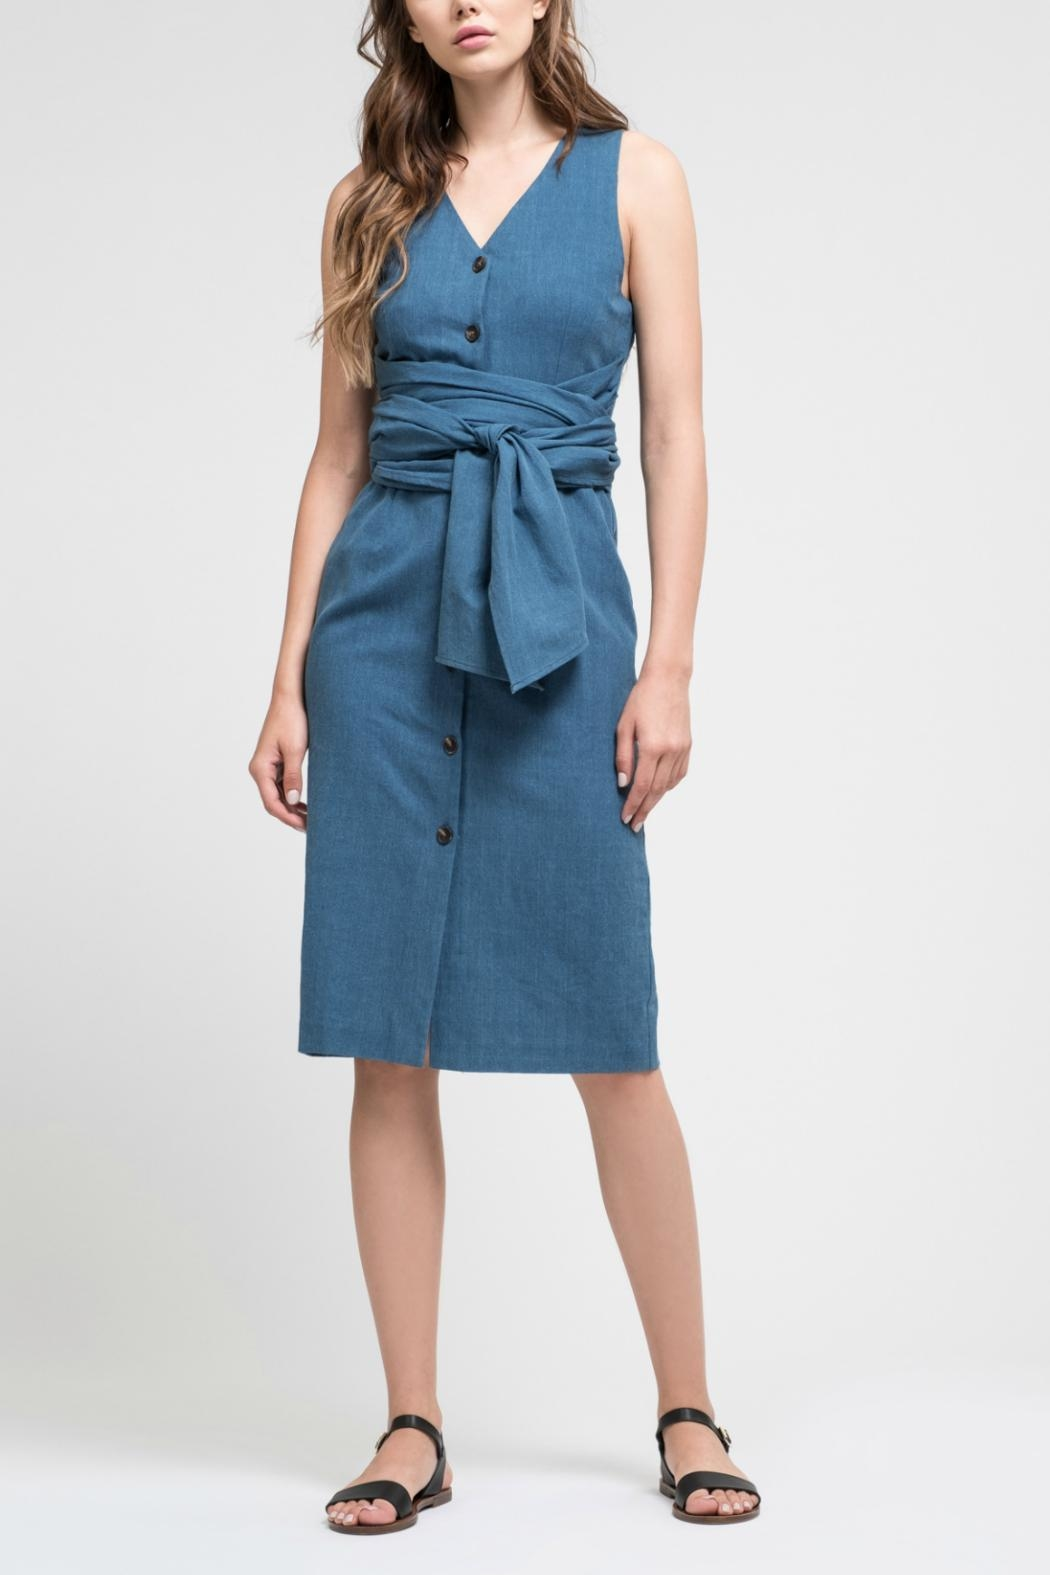 9ecf9b35afdd0 J.O.A. Denim Cotton Dress from New Jersey by Locust Whimsy — Shoptiques